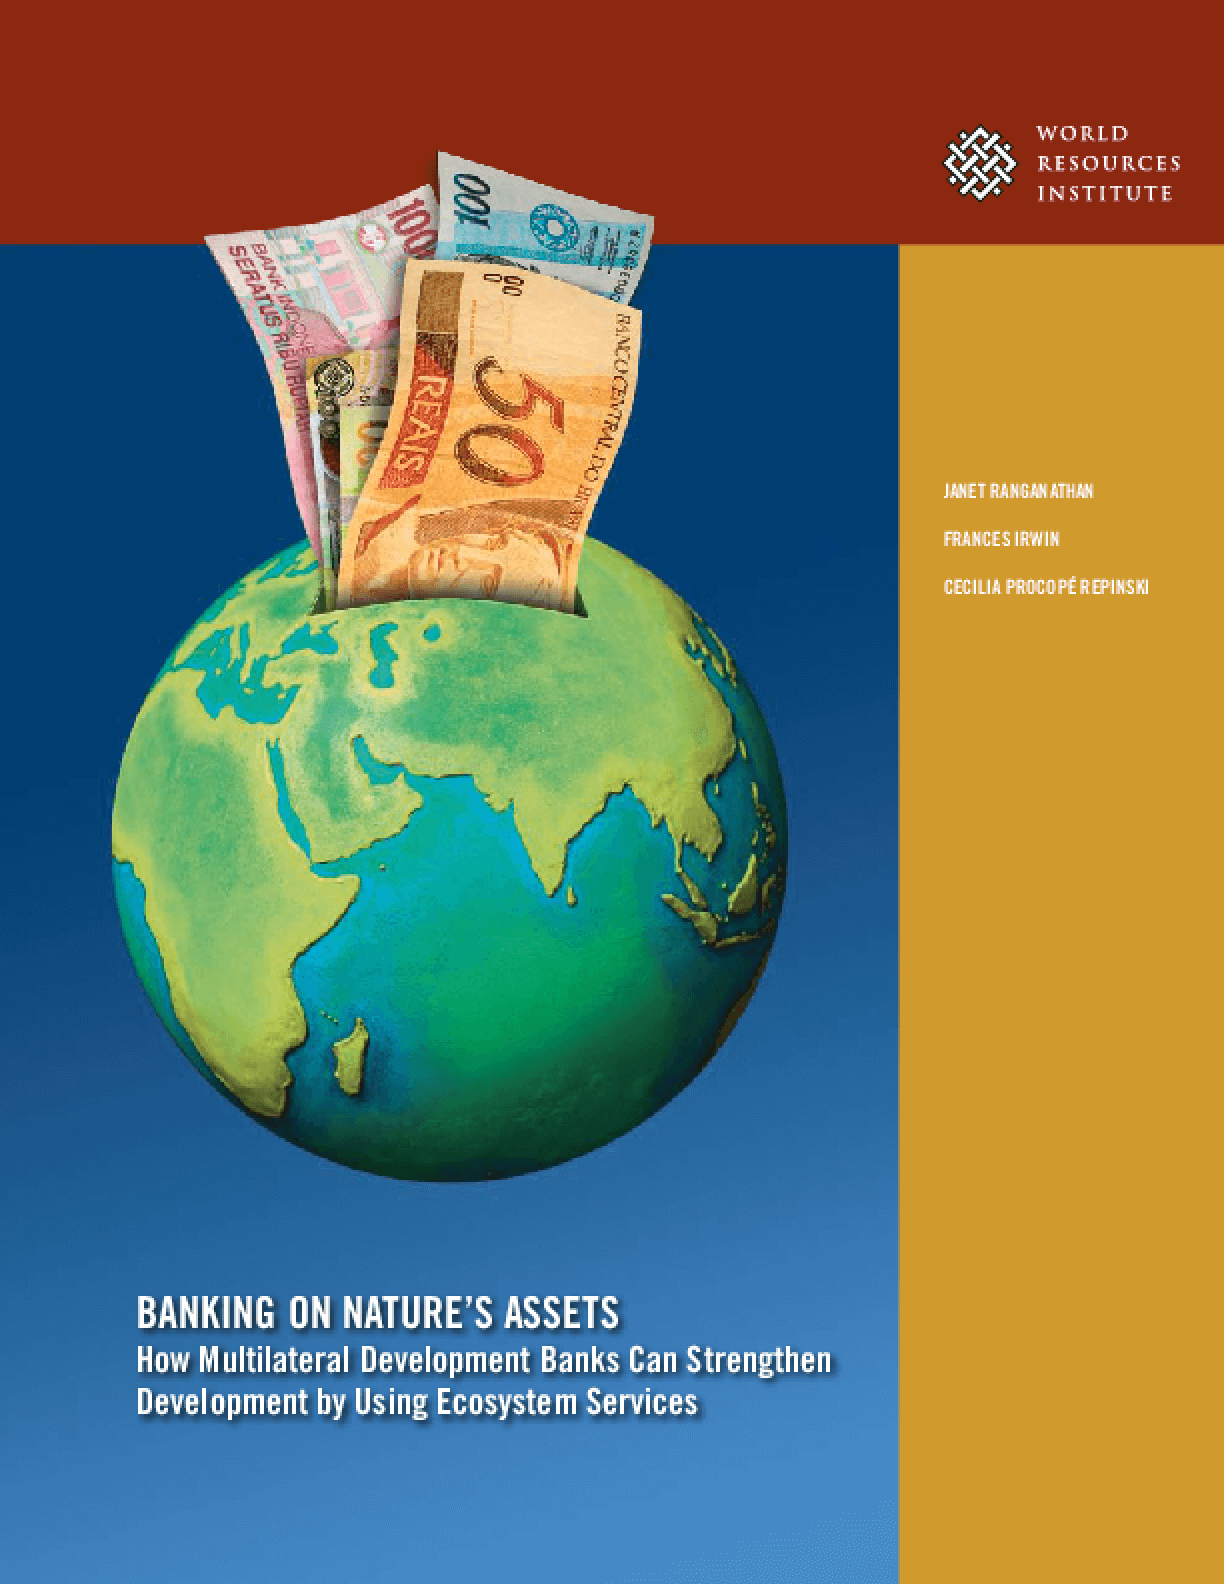 Banking on Nature's Assets: How Multilateral Development Banks Can Strengthen Development by Using Ecosystem Services